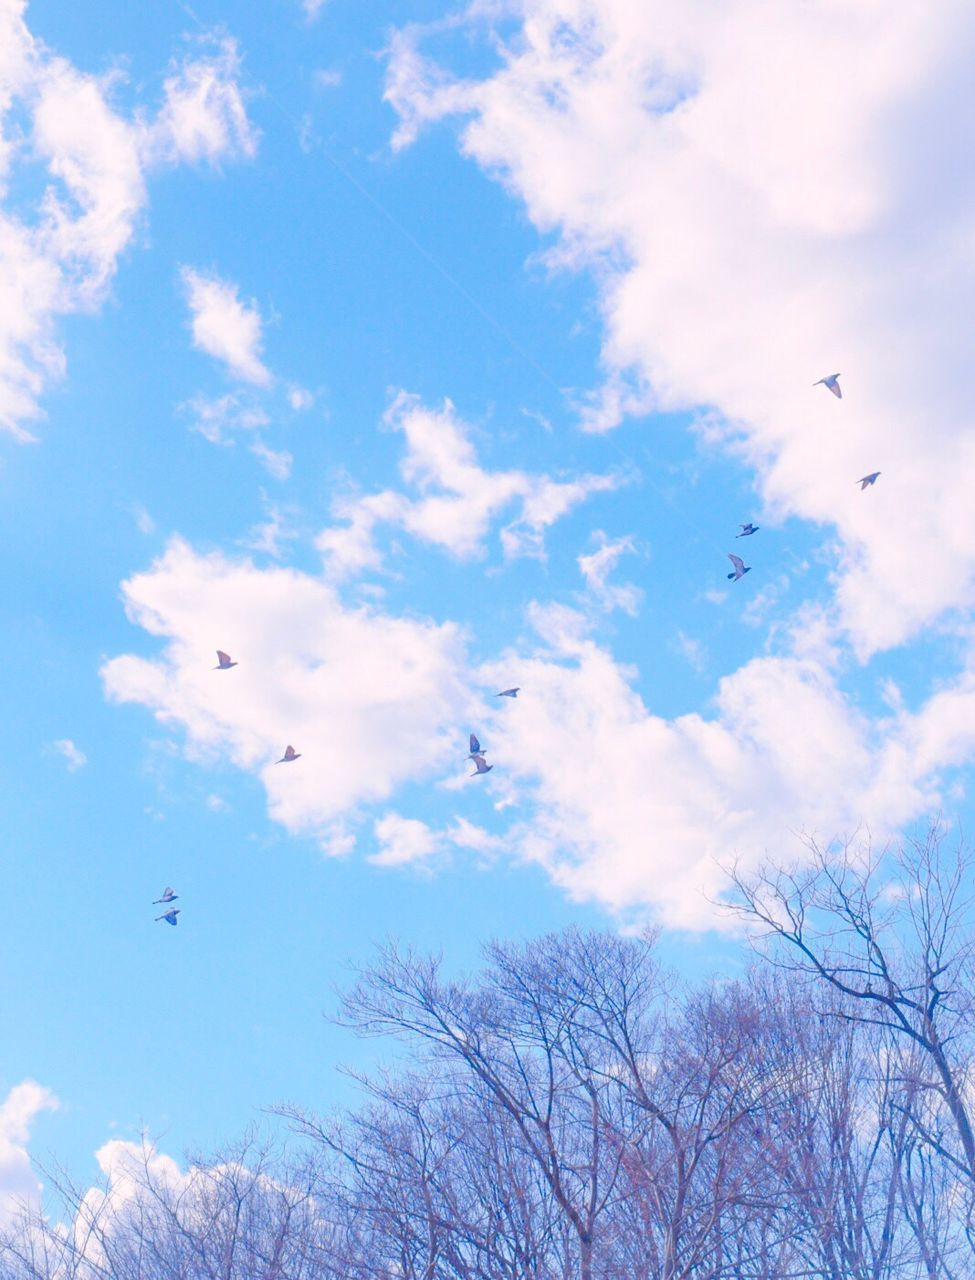 flying, bird, animal themes, animals in the wild, wildlife, mid-air, animal wildlife, one animal, spread wings, sky, flock of birds, low angle view, day, nature, cloud - sky, migrating, no people, seagull, outdoors, beauty in nature